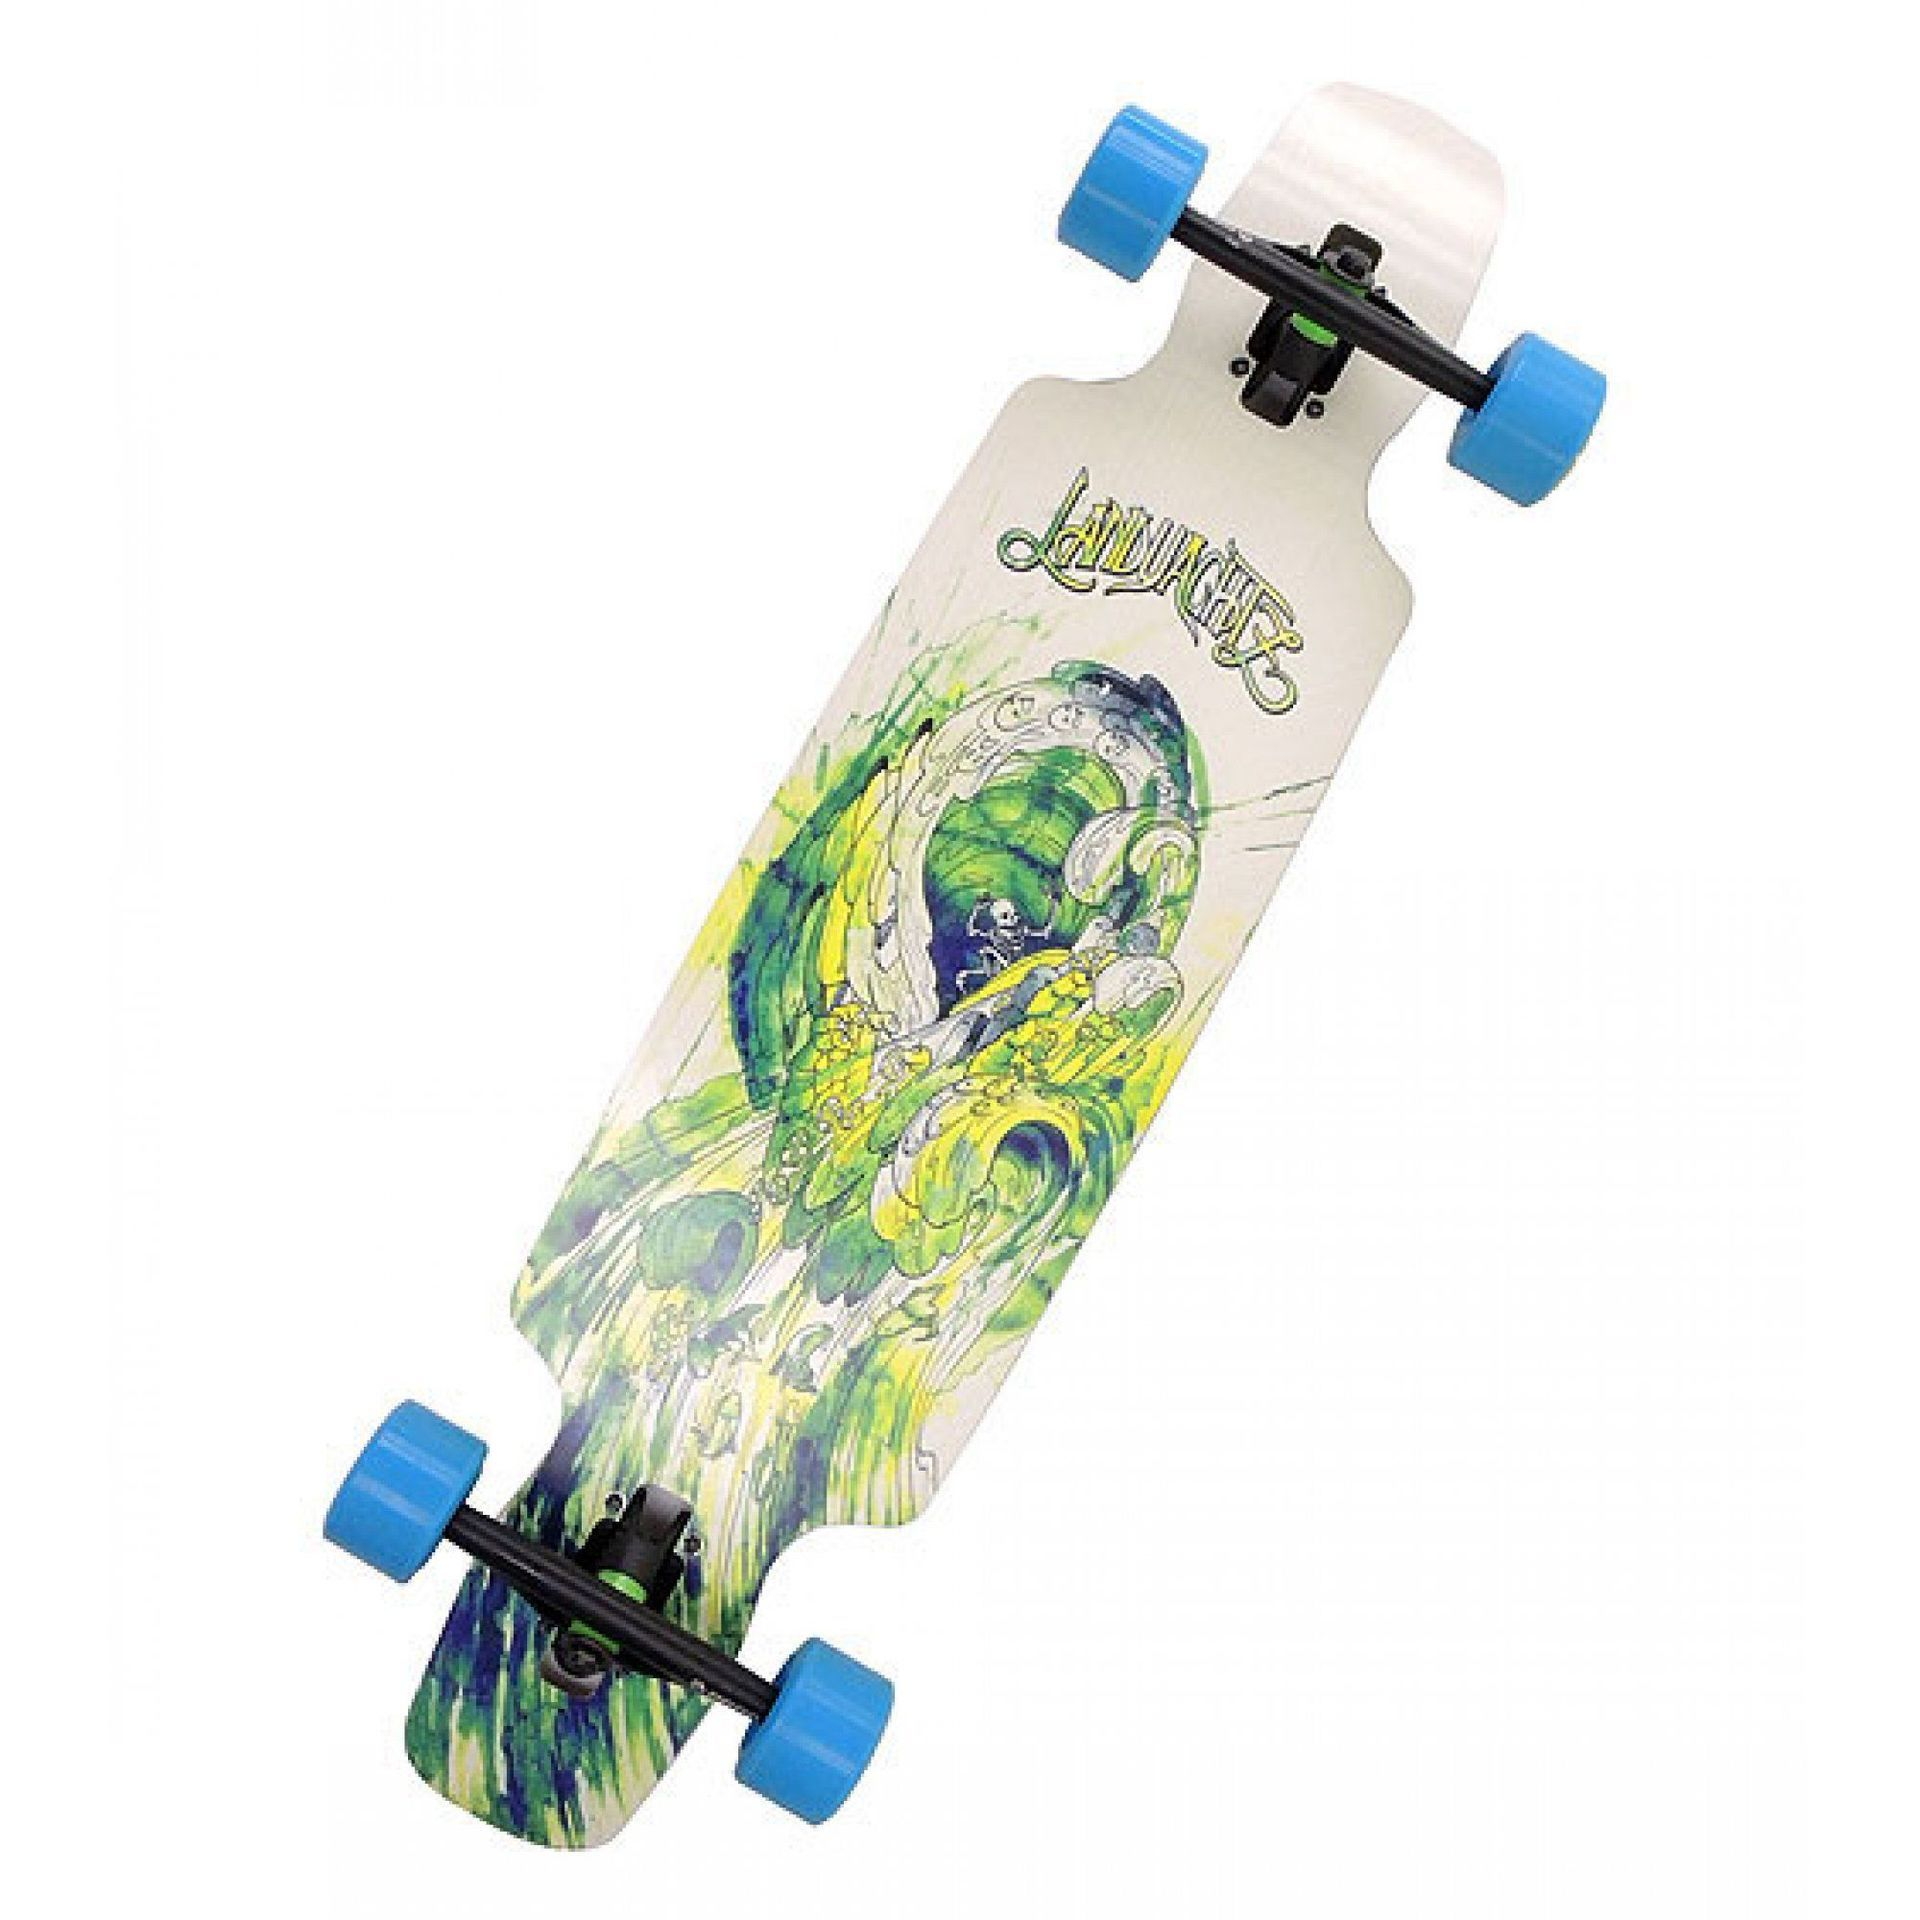 LONGBOARD LANDYACHTZ DROP CARVE 37 WAVES BASIC BLUE 1